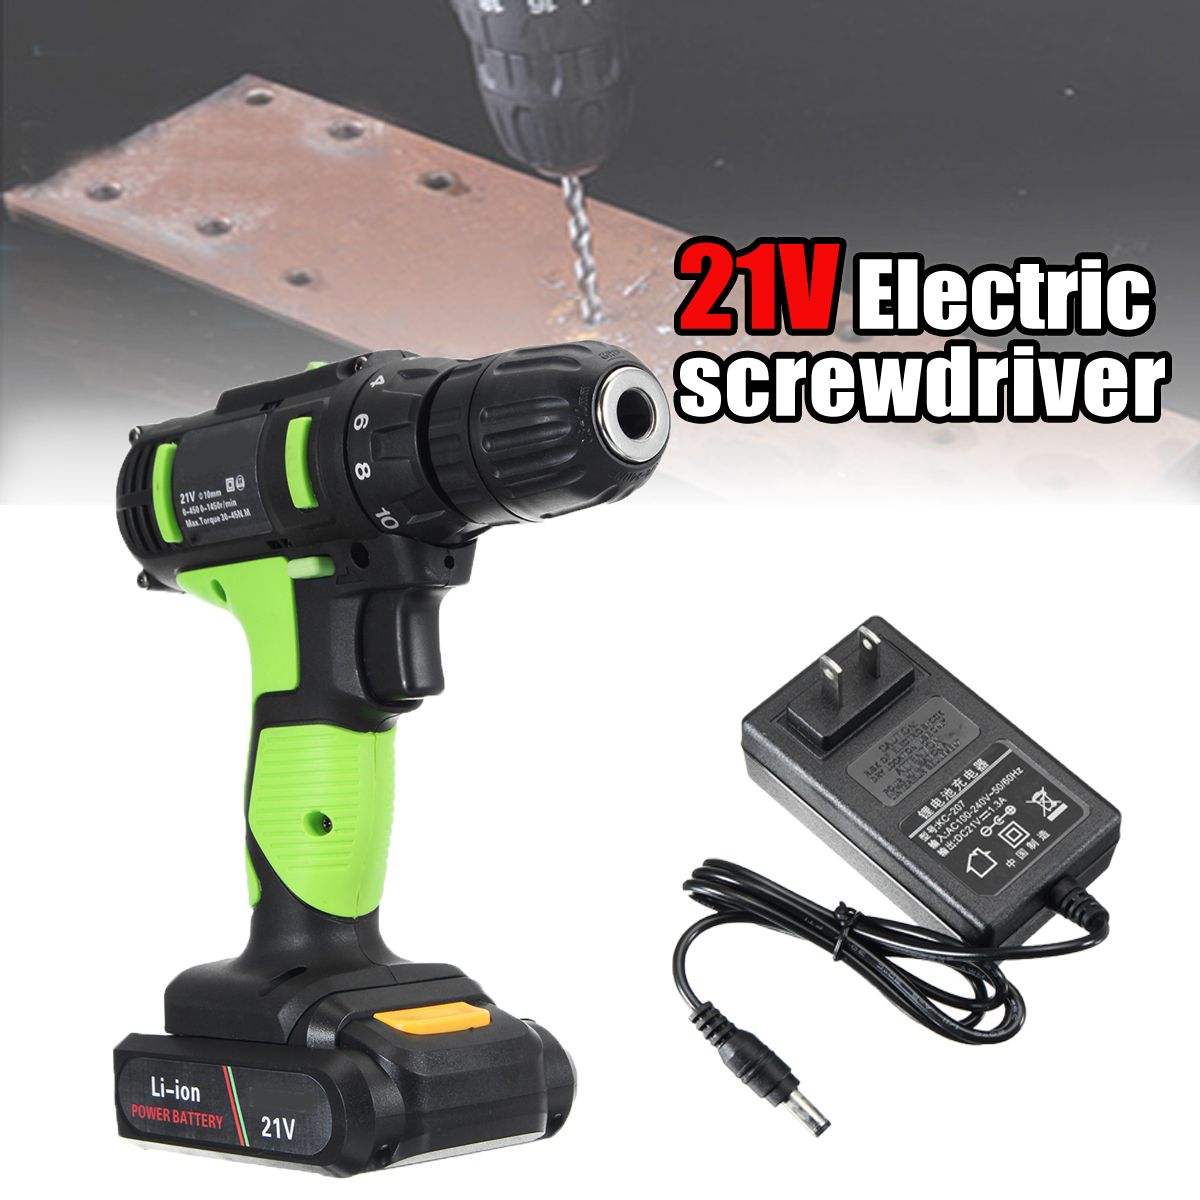 Rechargeable Electric Screwdriver 21V Li-ion Electric Charging Power Drill Two Speed 30-45Nm Hand Tools 21v battery screwdriver electric mini cordless two speed charged drill power tools impact li ion screwdriver drille